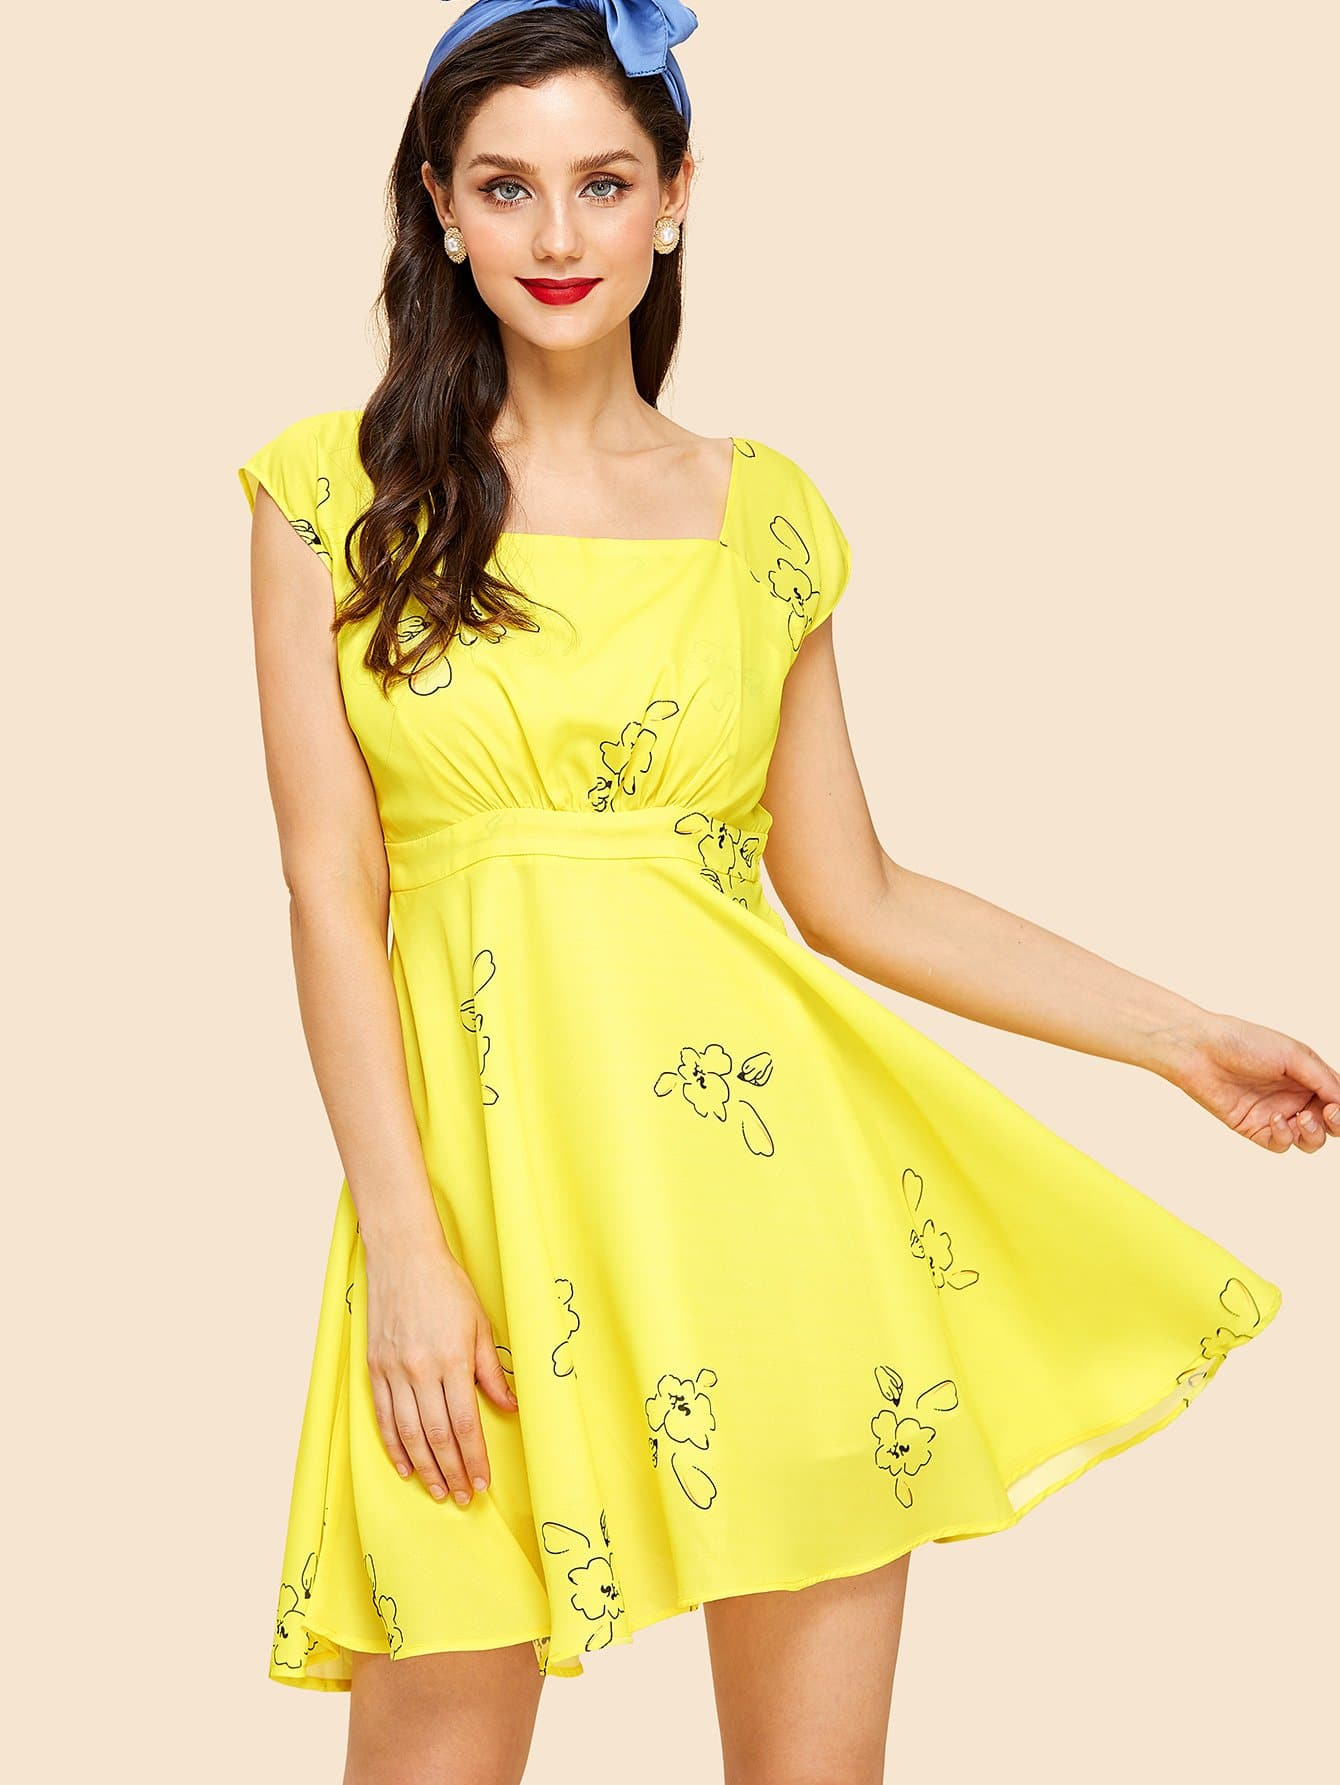 Square Neck Fit & Flare Floral Dress square neck flower print fit and flare dress